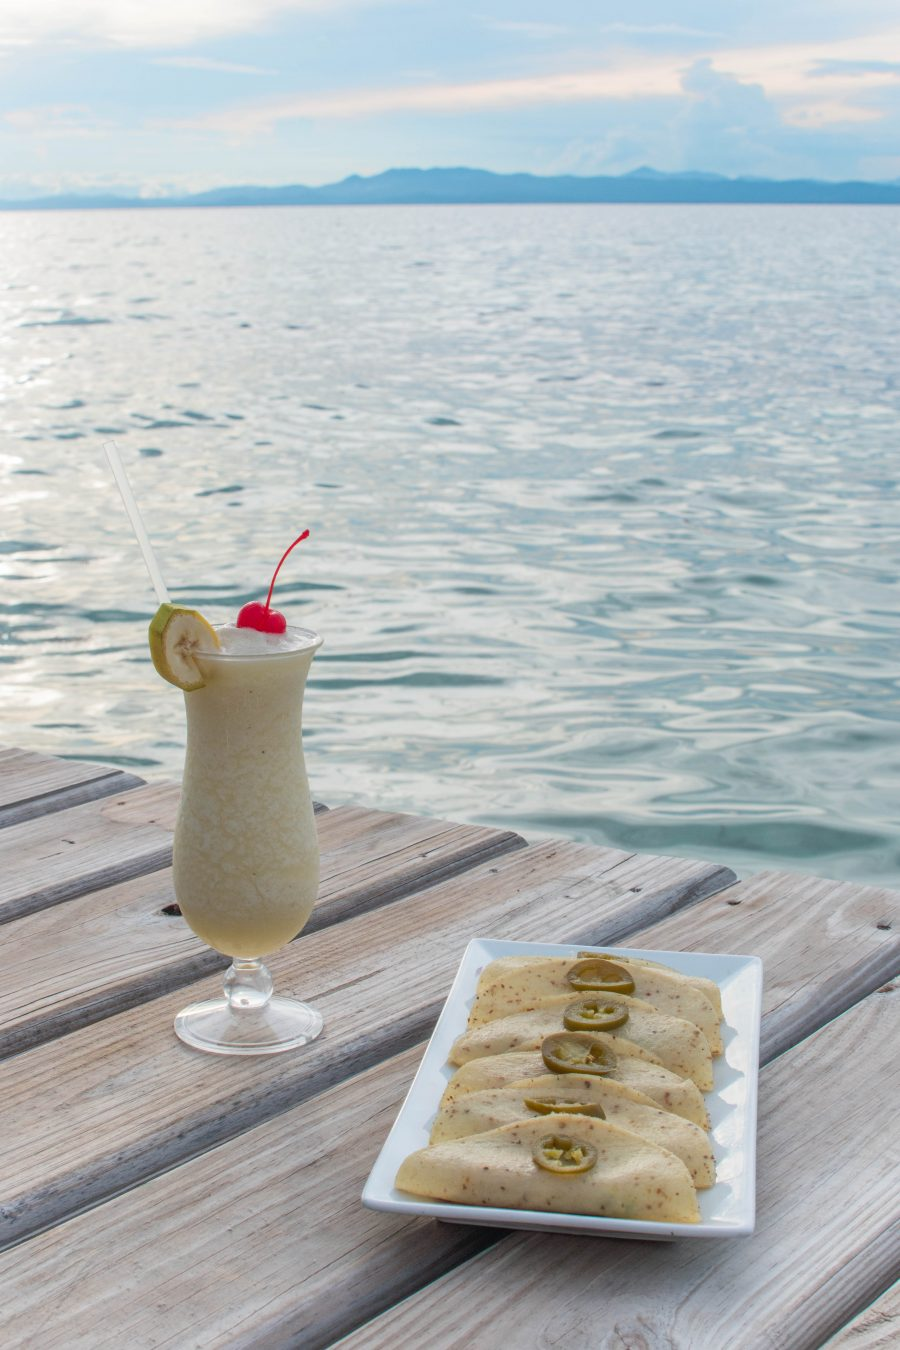 all-inclusive-food-and-drink-at-coco-plum